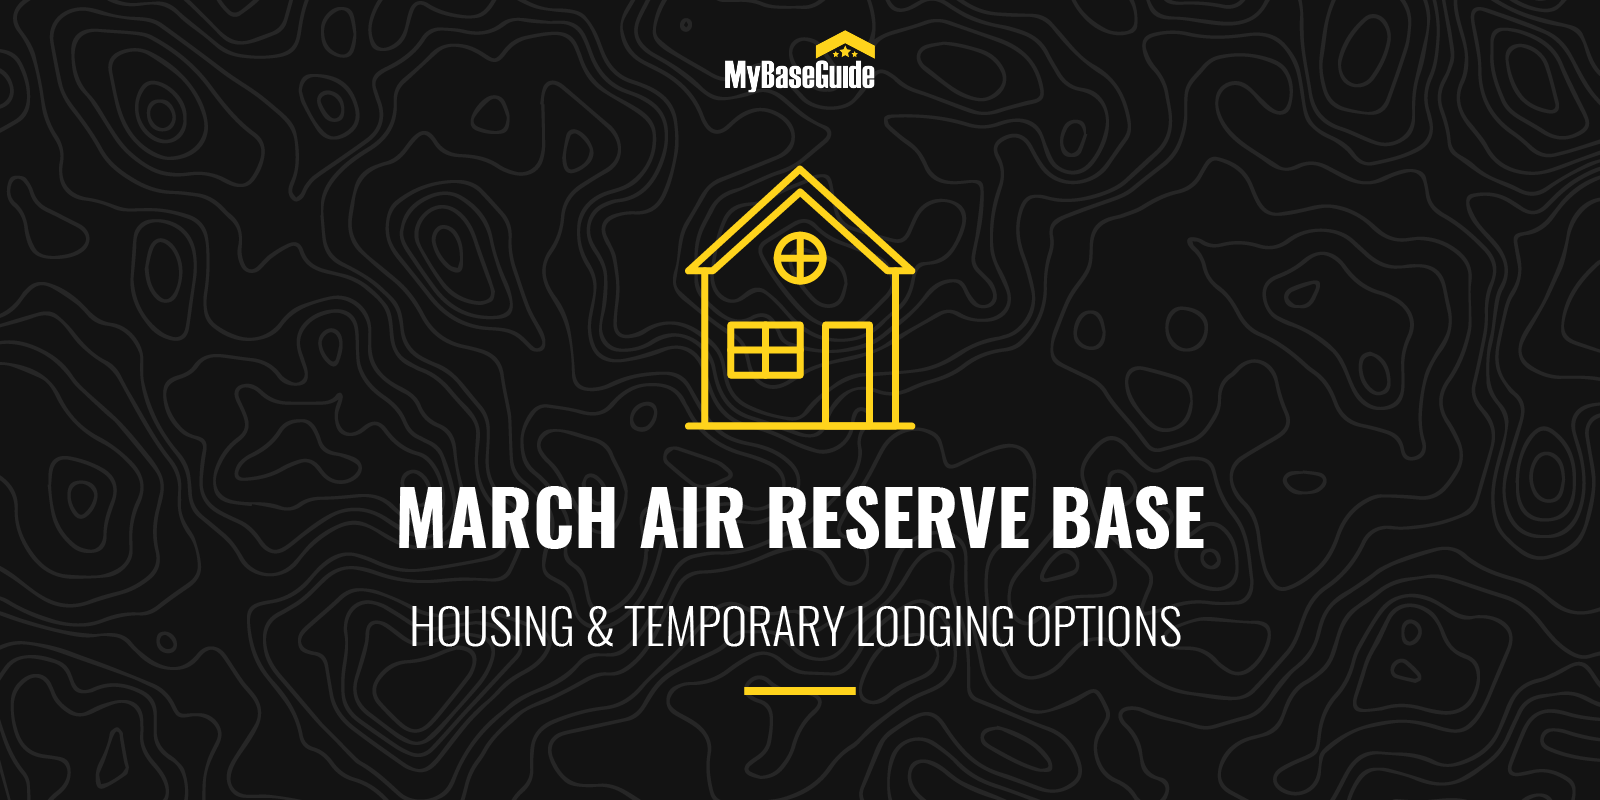 March Air Reserve Base Housing & Temporary Lodging Options